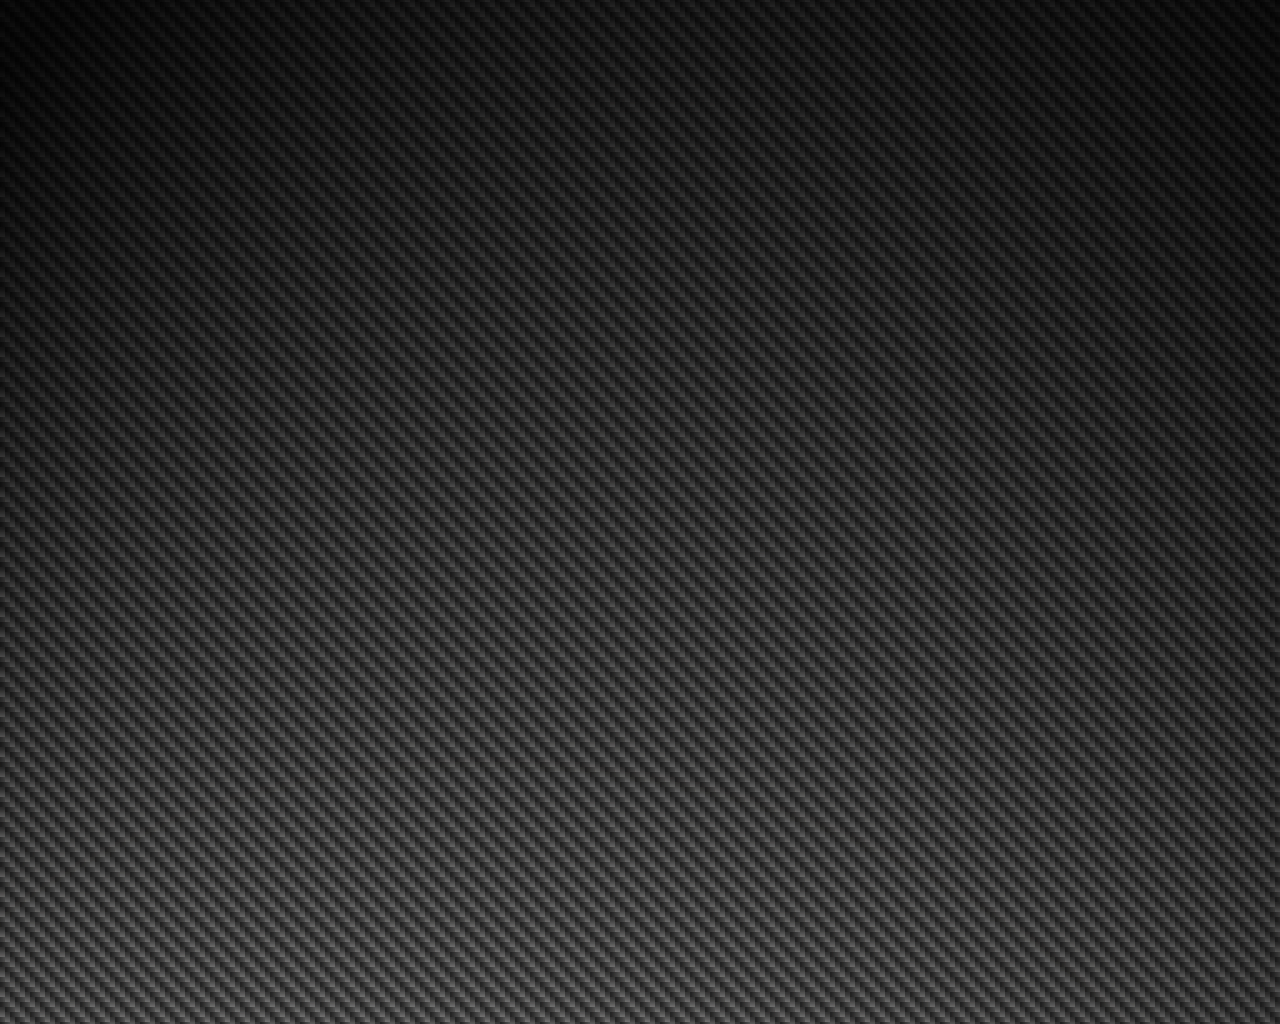 Free Carbon Fiber Wallpaper